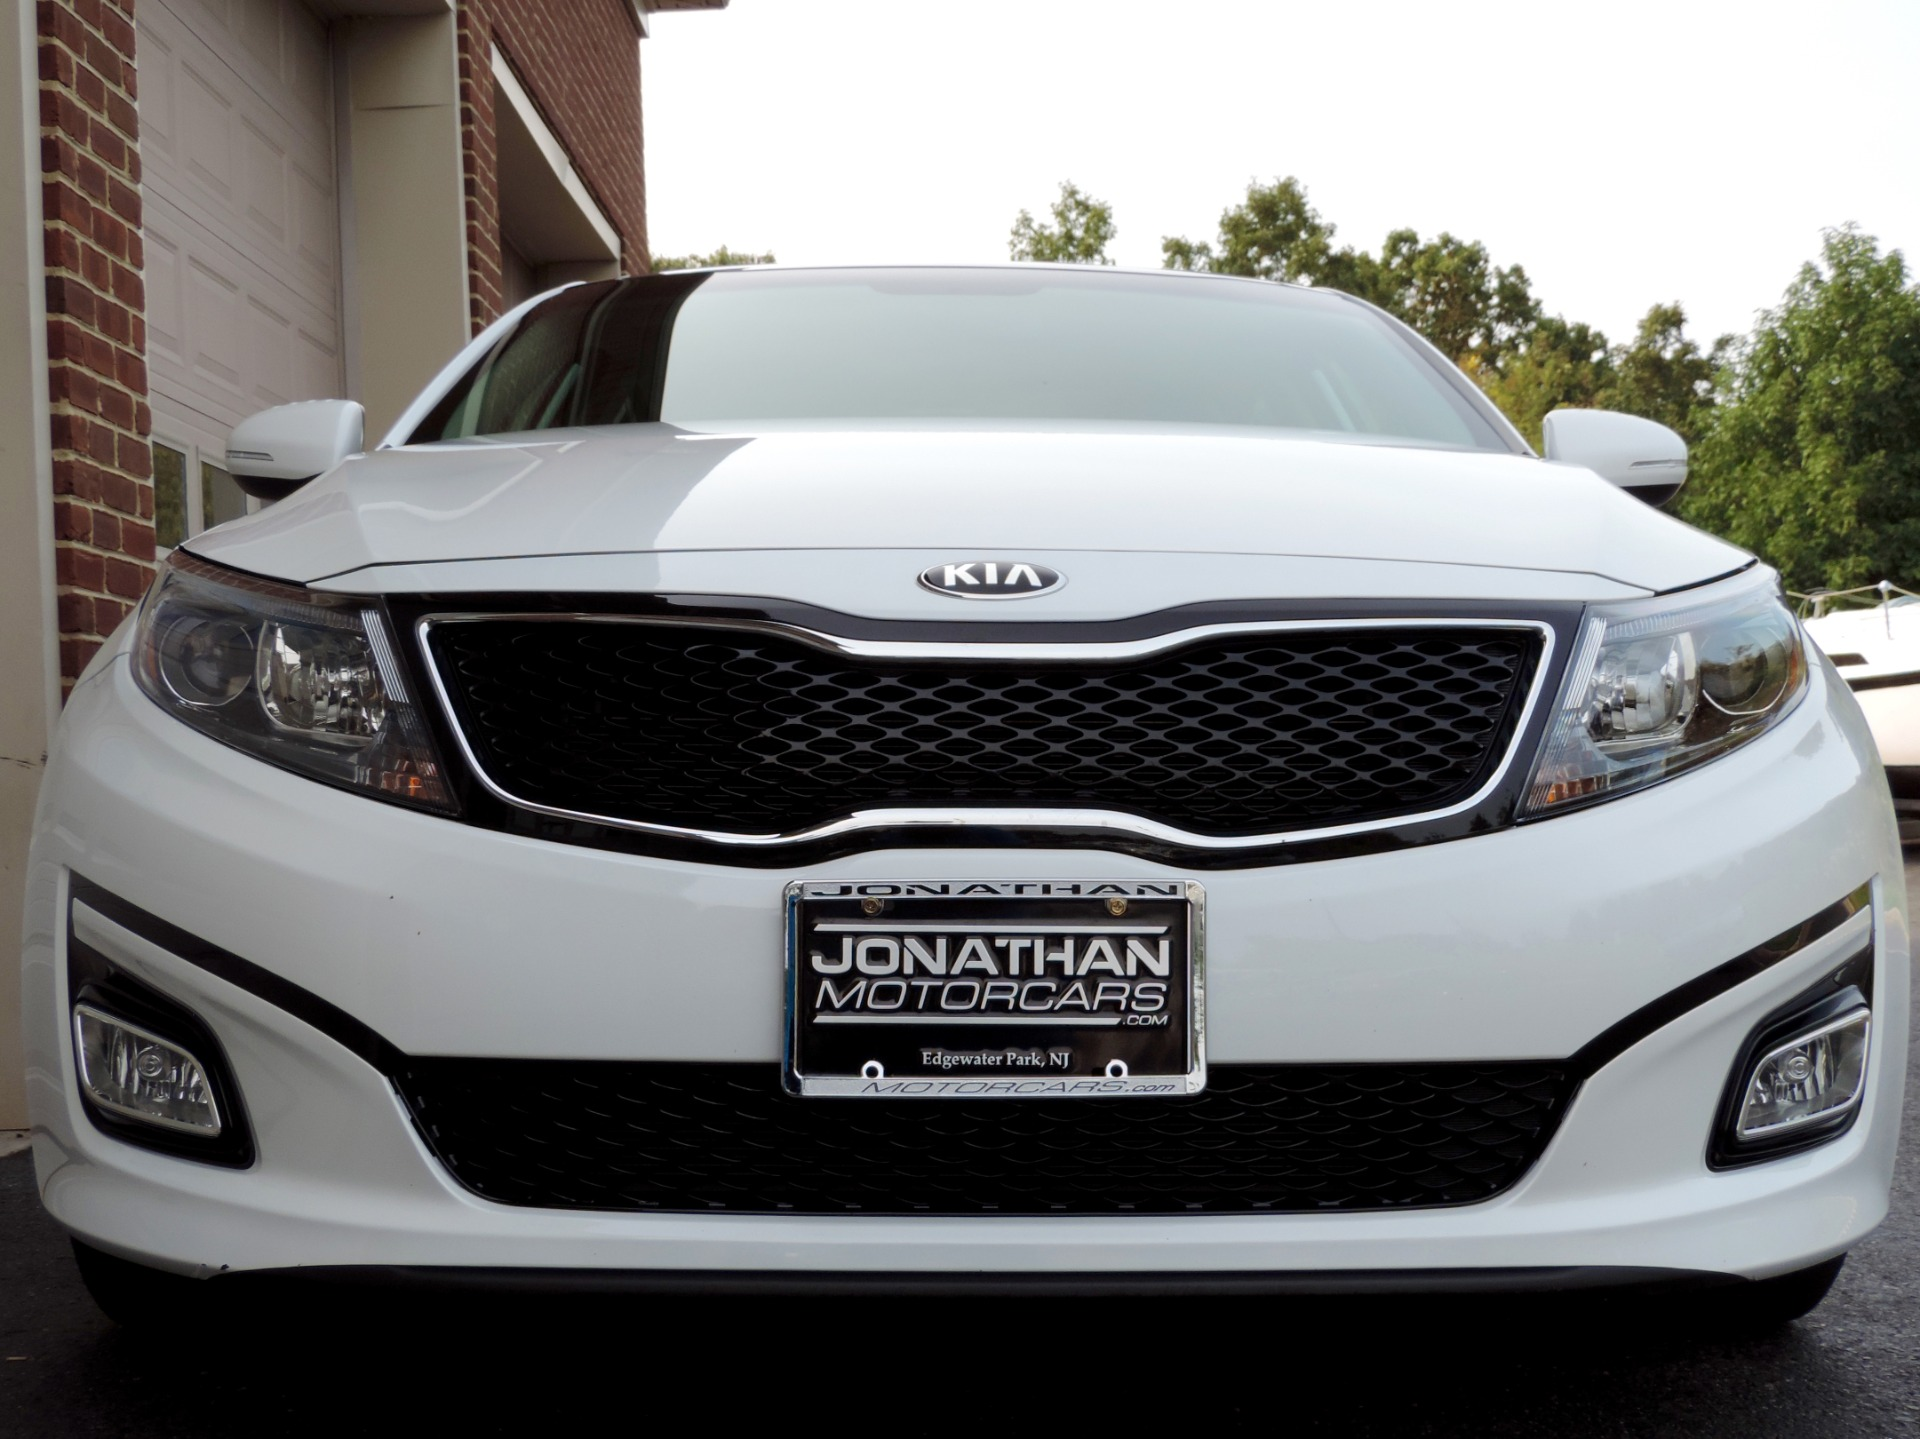 2015 Kia Optima Ex Stock 505993 For Sale Near Edgewater Park Nj Rear View Camera Used